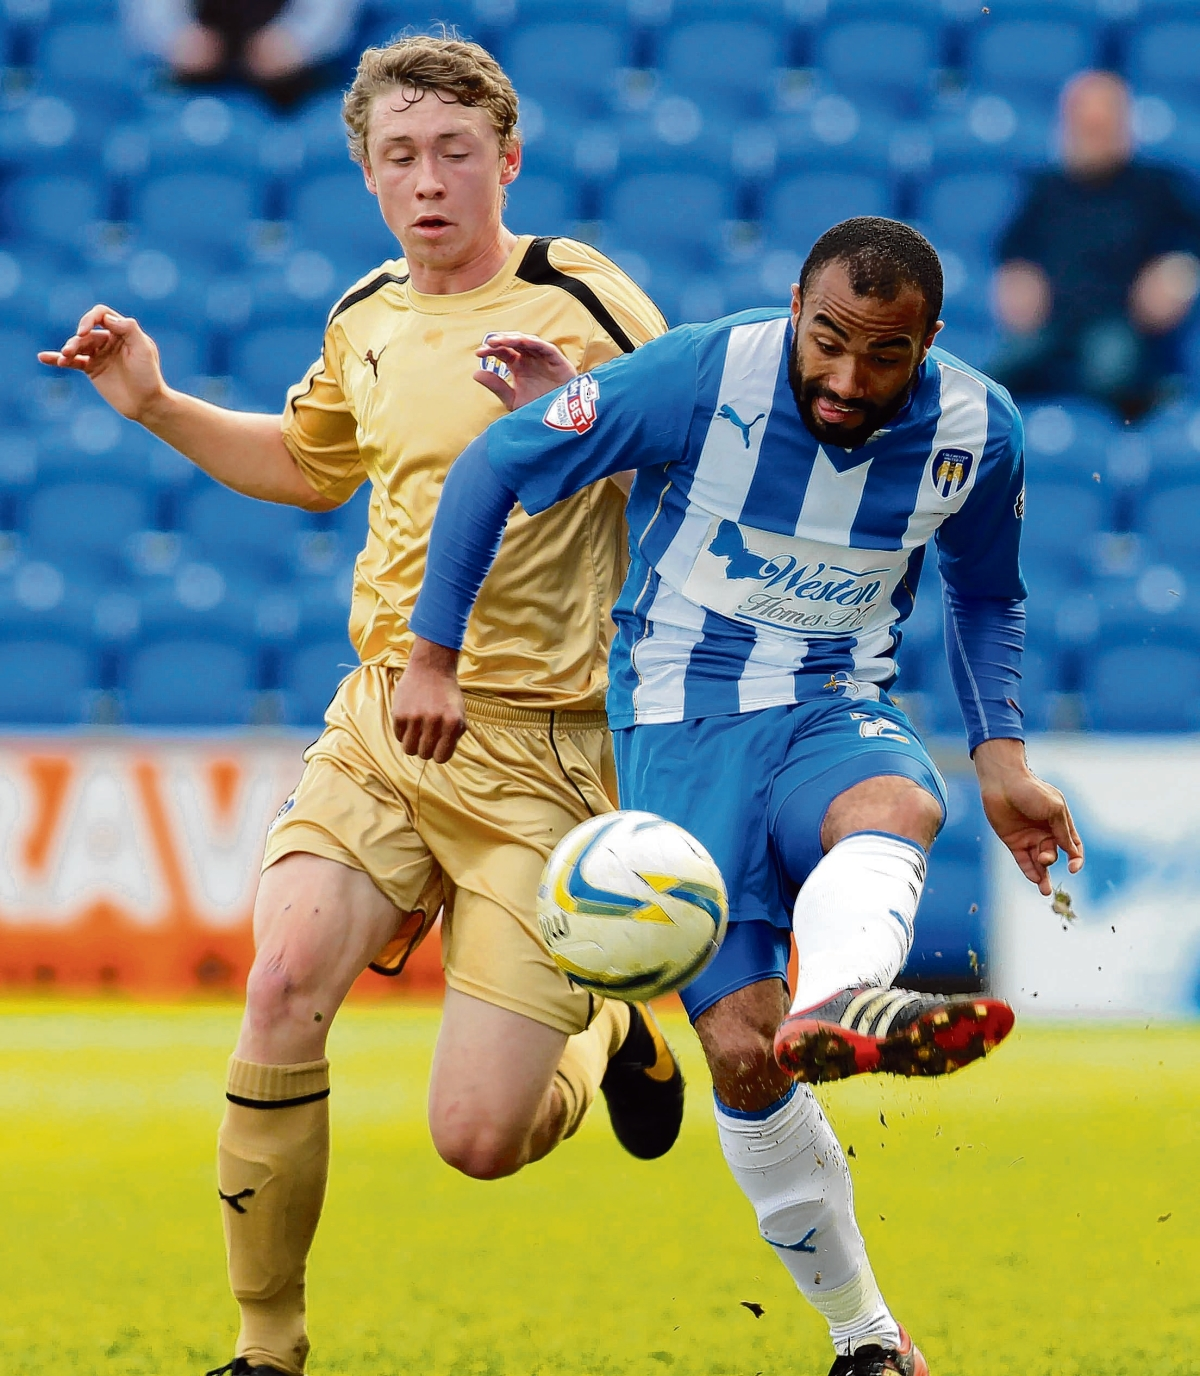 Decision time - Dominic Vose is one of several players mulling over contract offers from Colchester United.